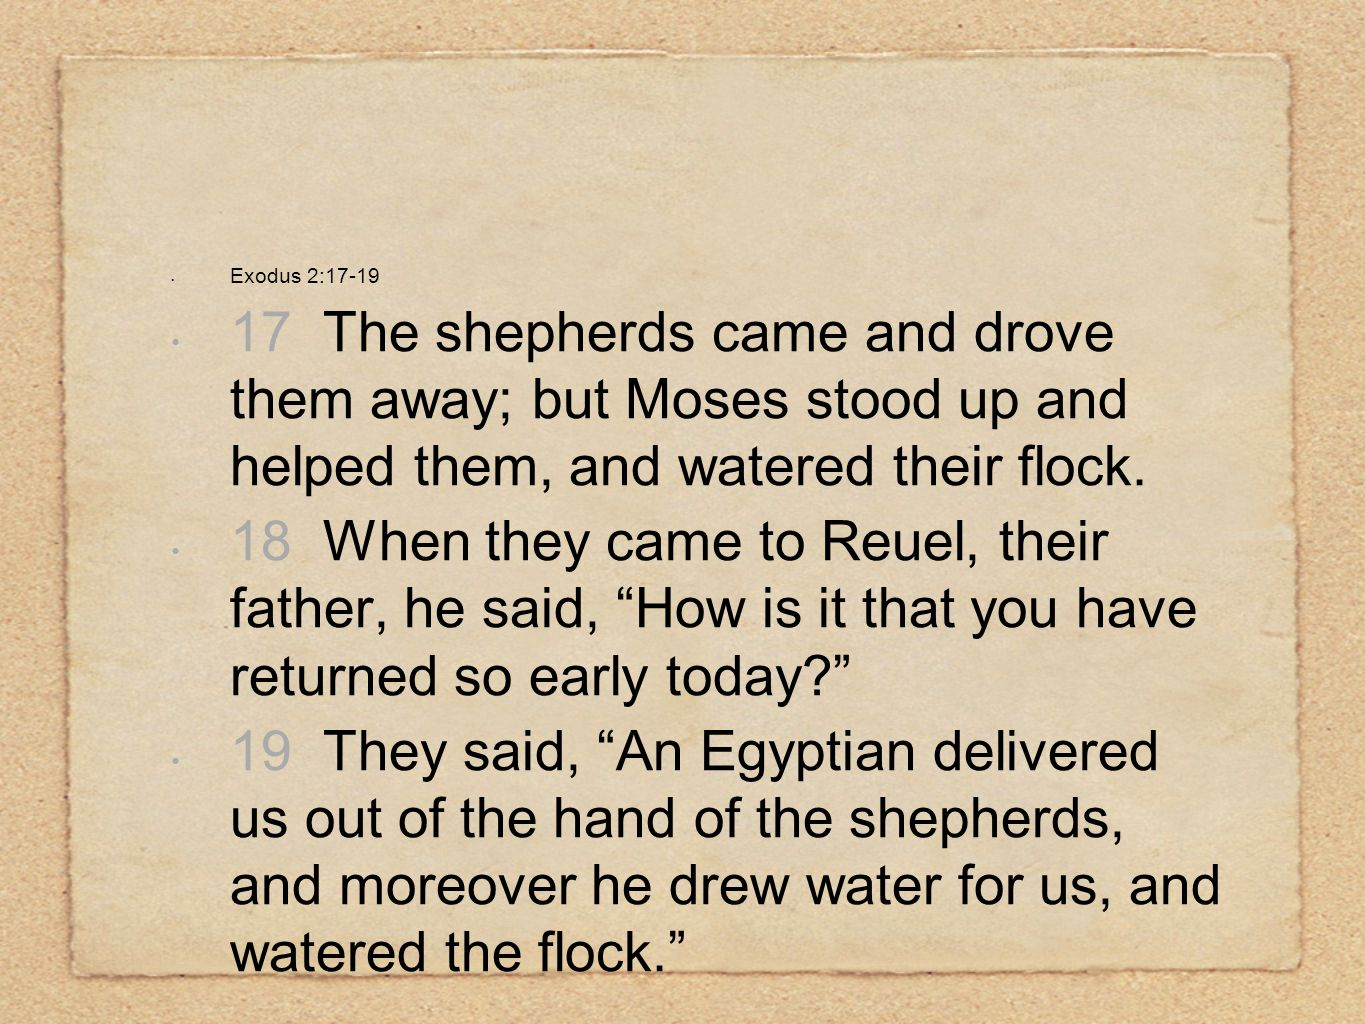 Exodus 2:17-19 17 The shepherds came and drove them away; but Moses stood up and helped them, and watered their flock.